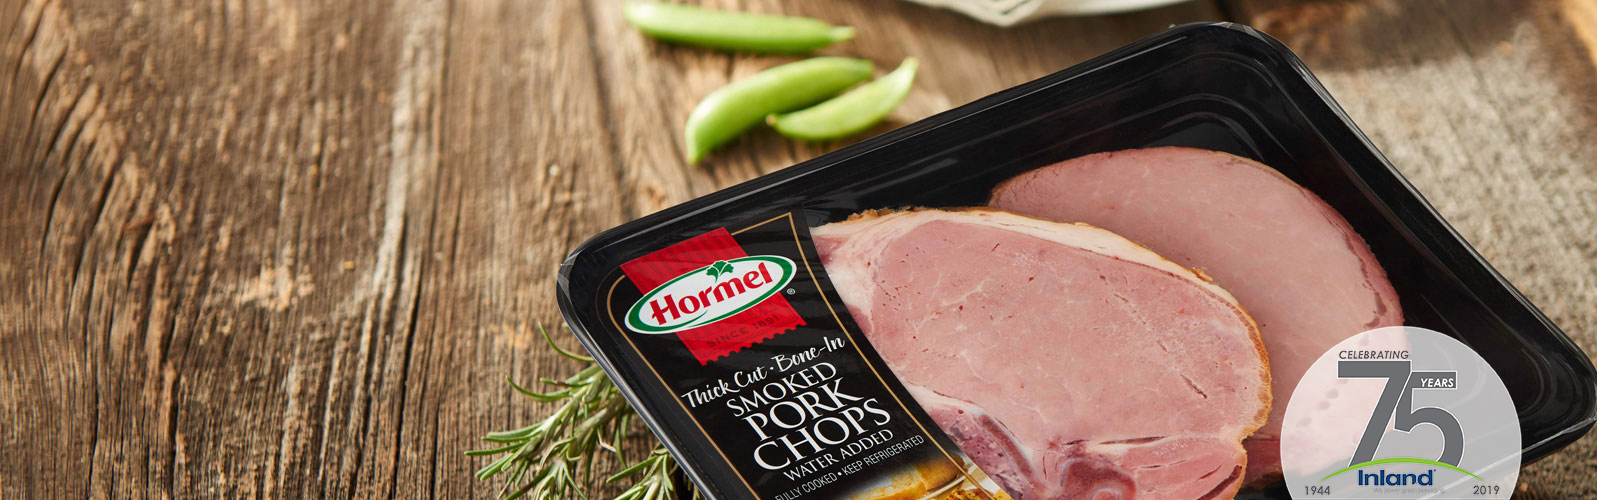 Hormel smoked pork chops pressure sensitive label by Inland